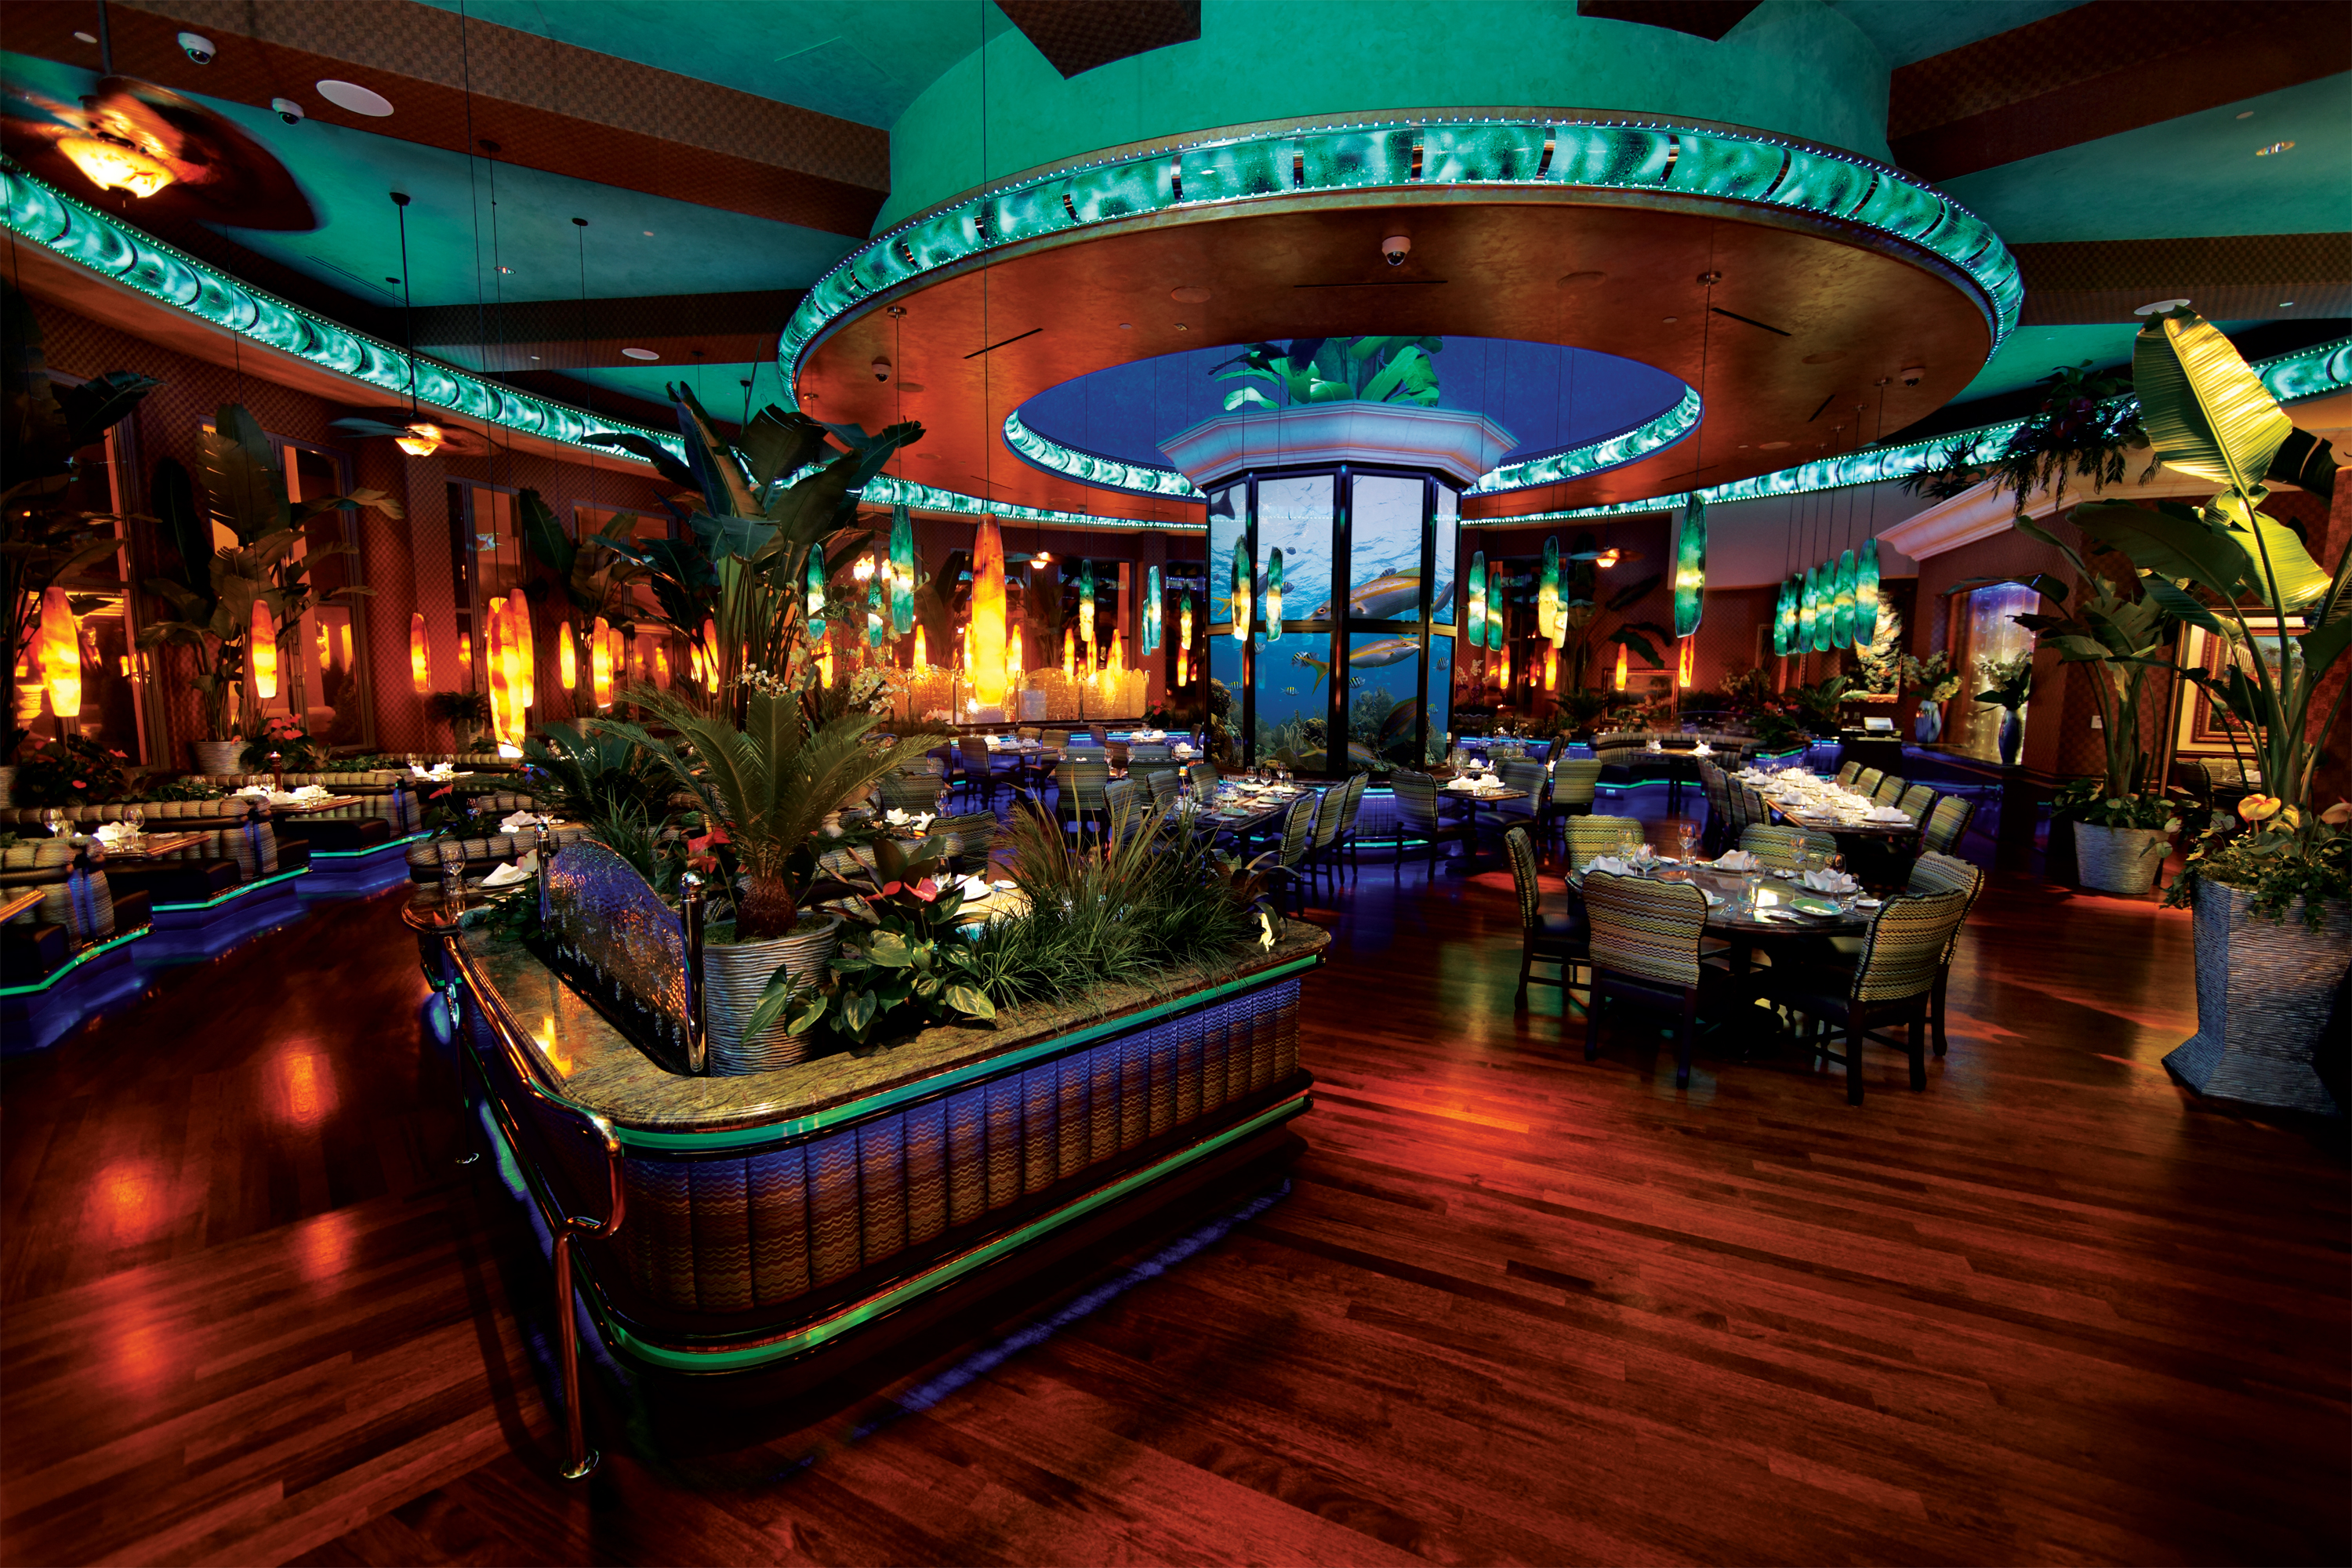 Peppermill Reno Bimini Steakhouse restaurant